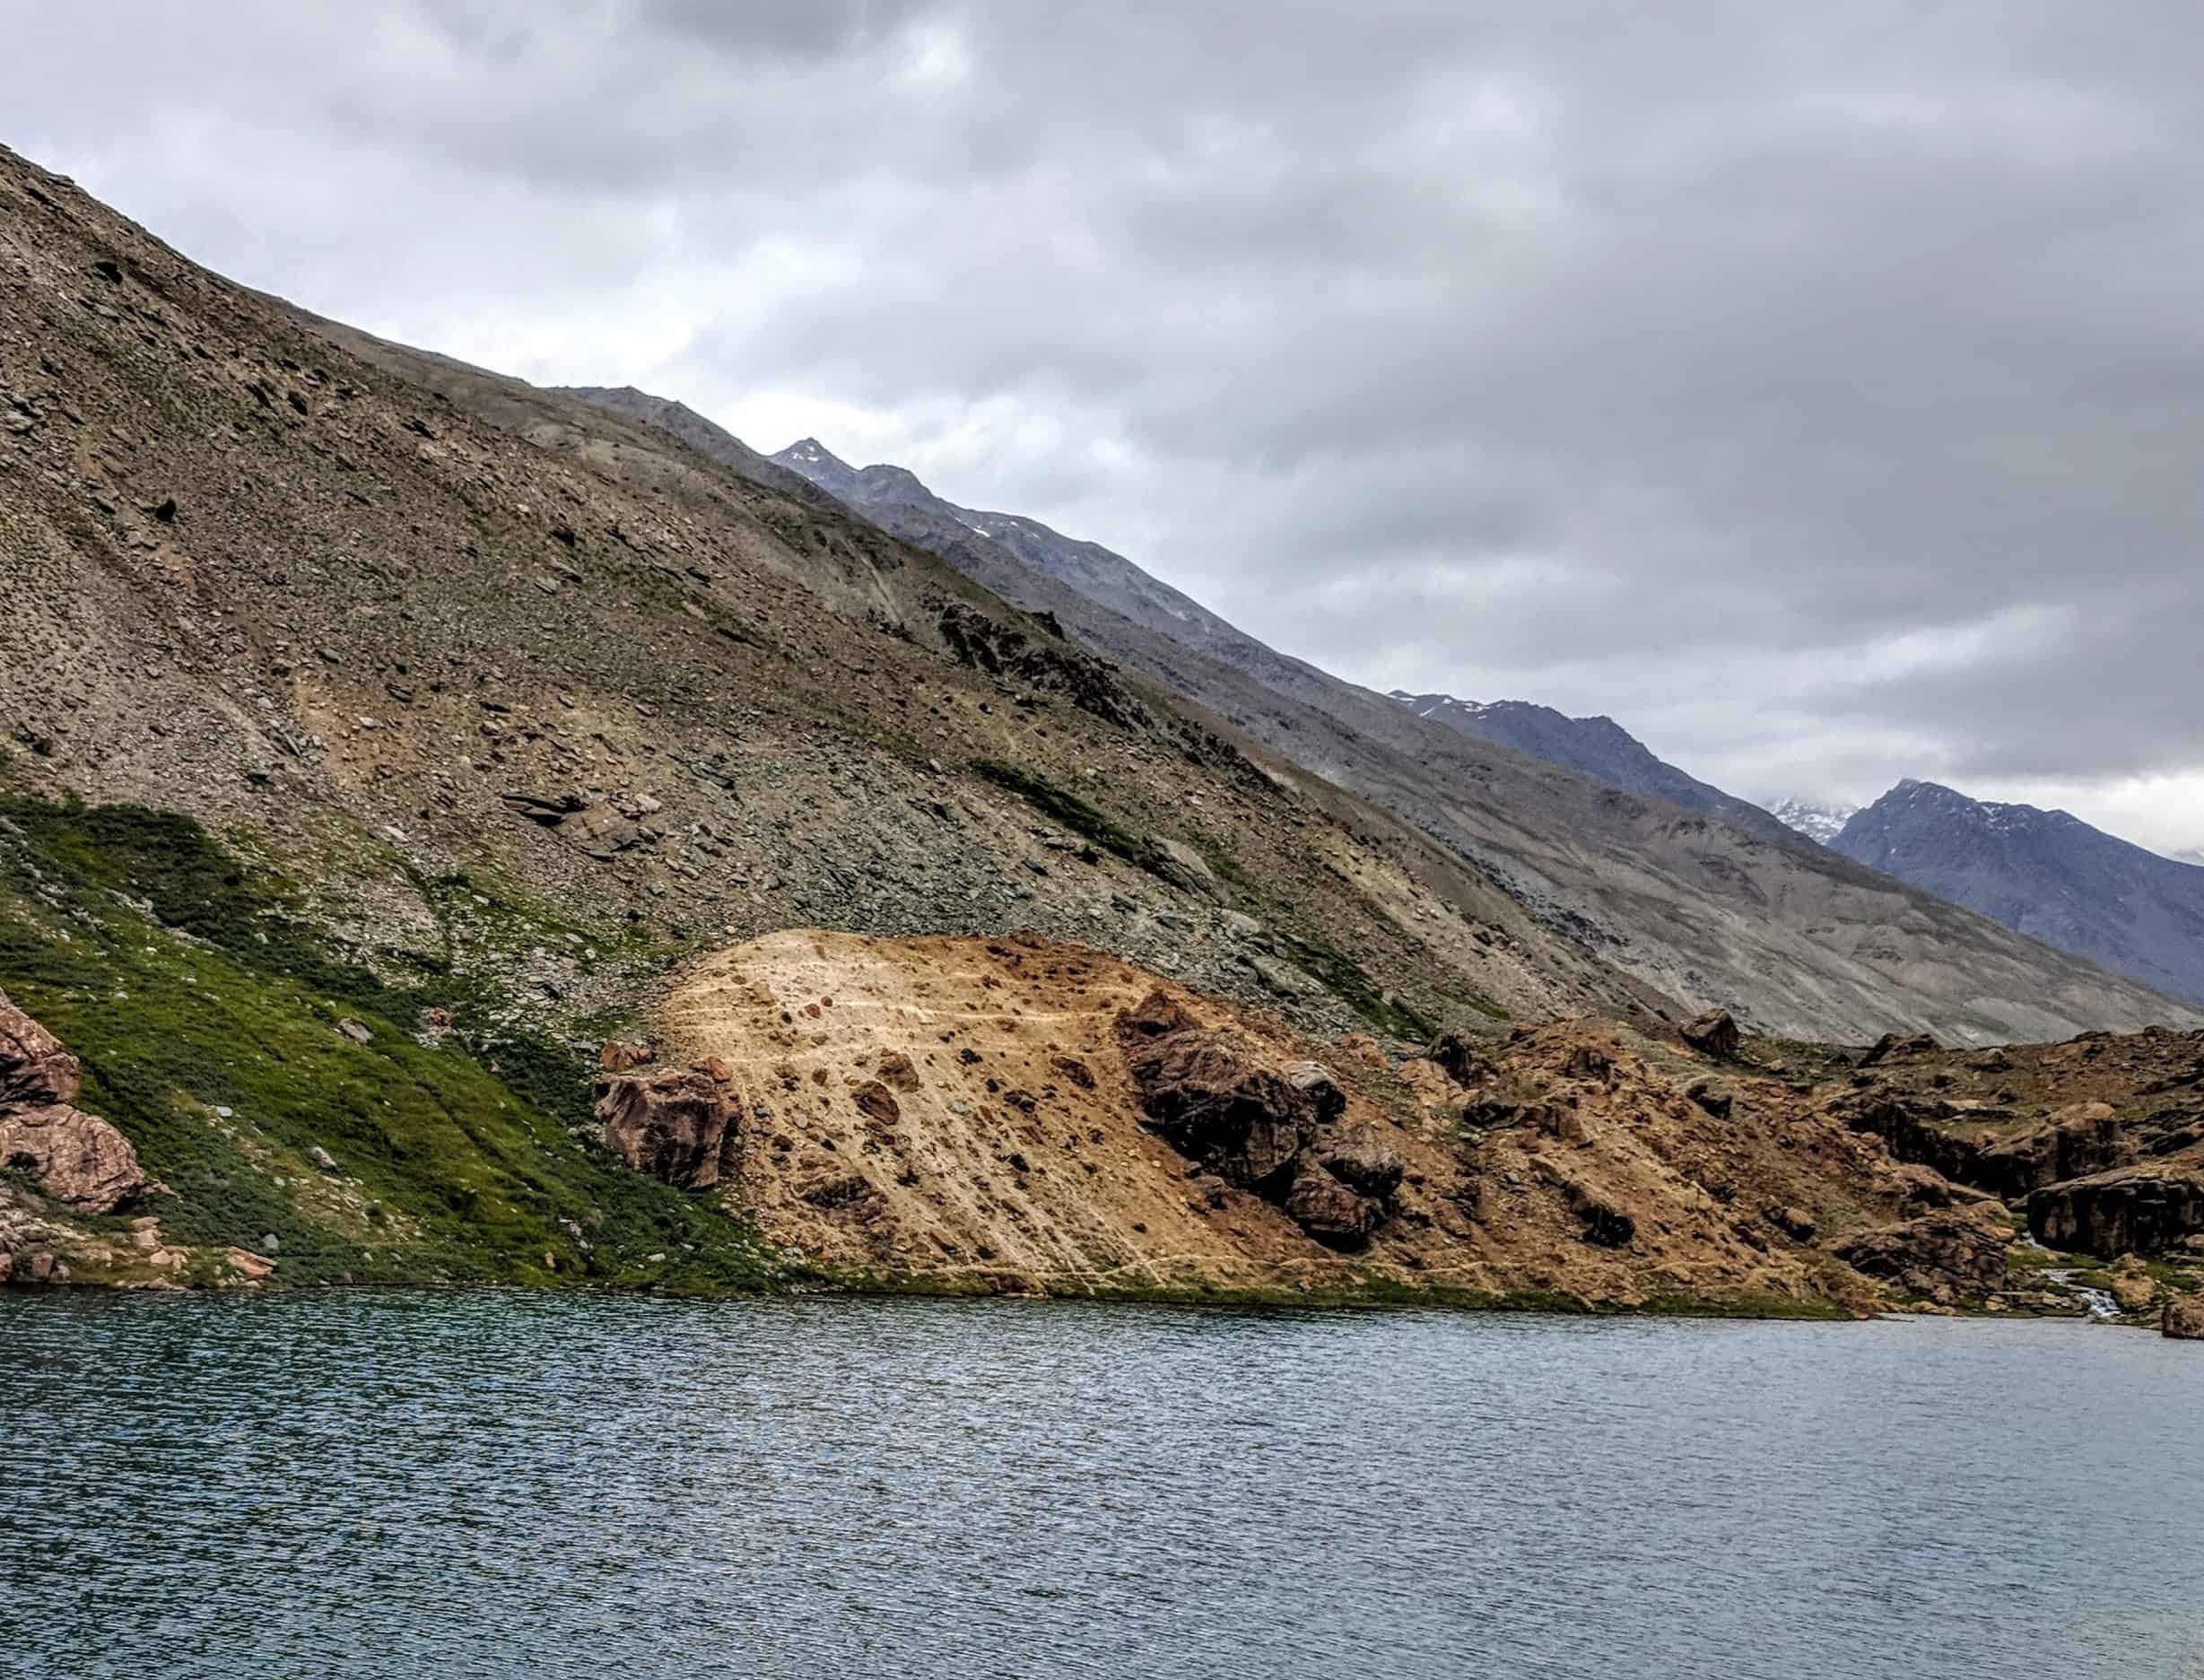 Deepak Tal - A quaint little pond at Manali - Leh Highway